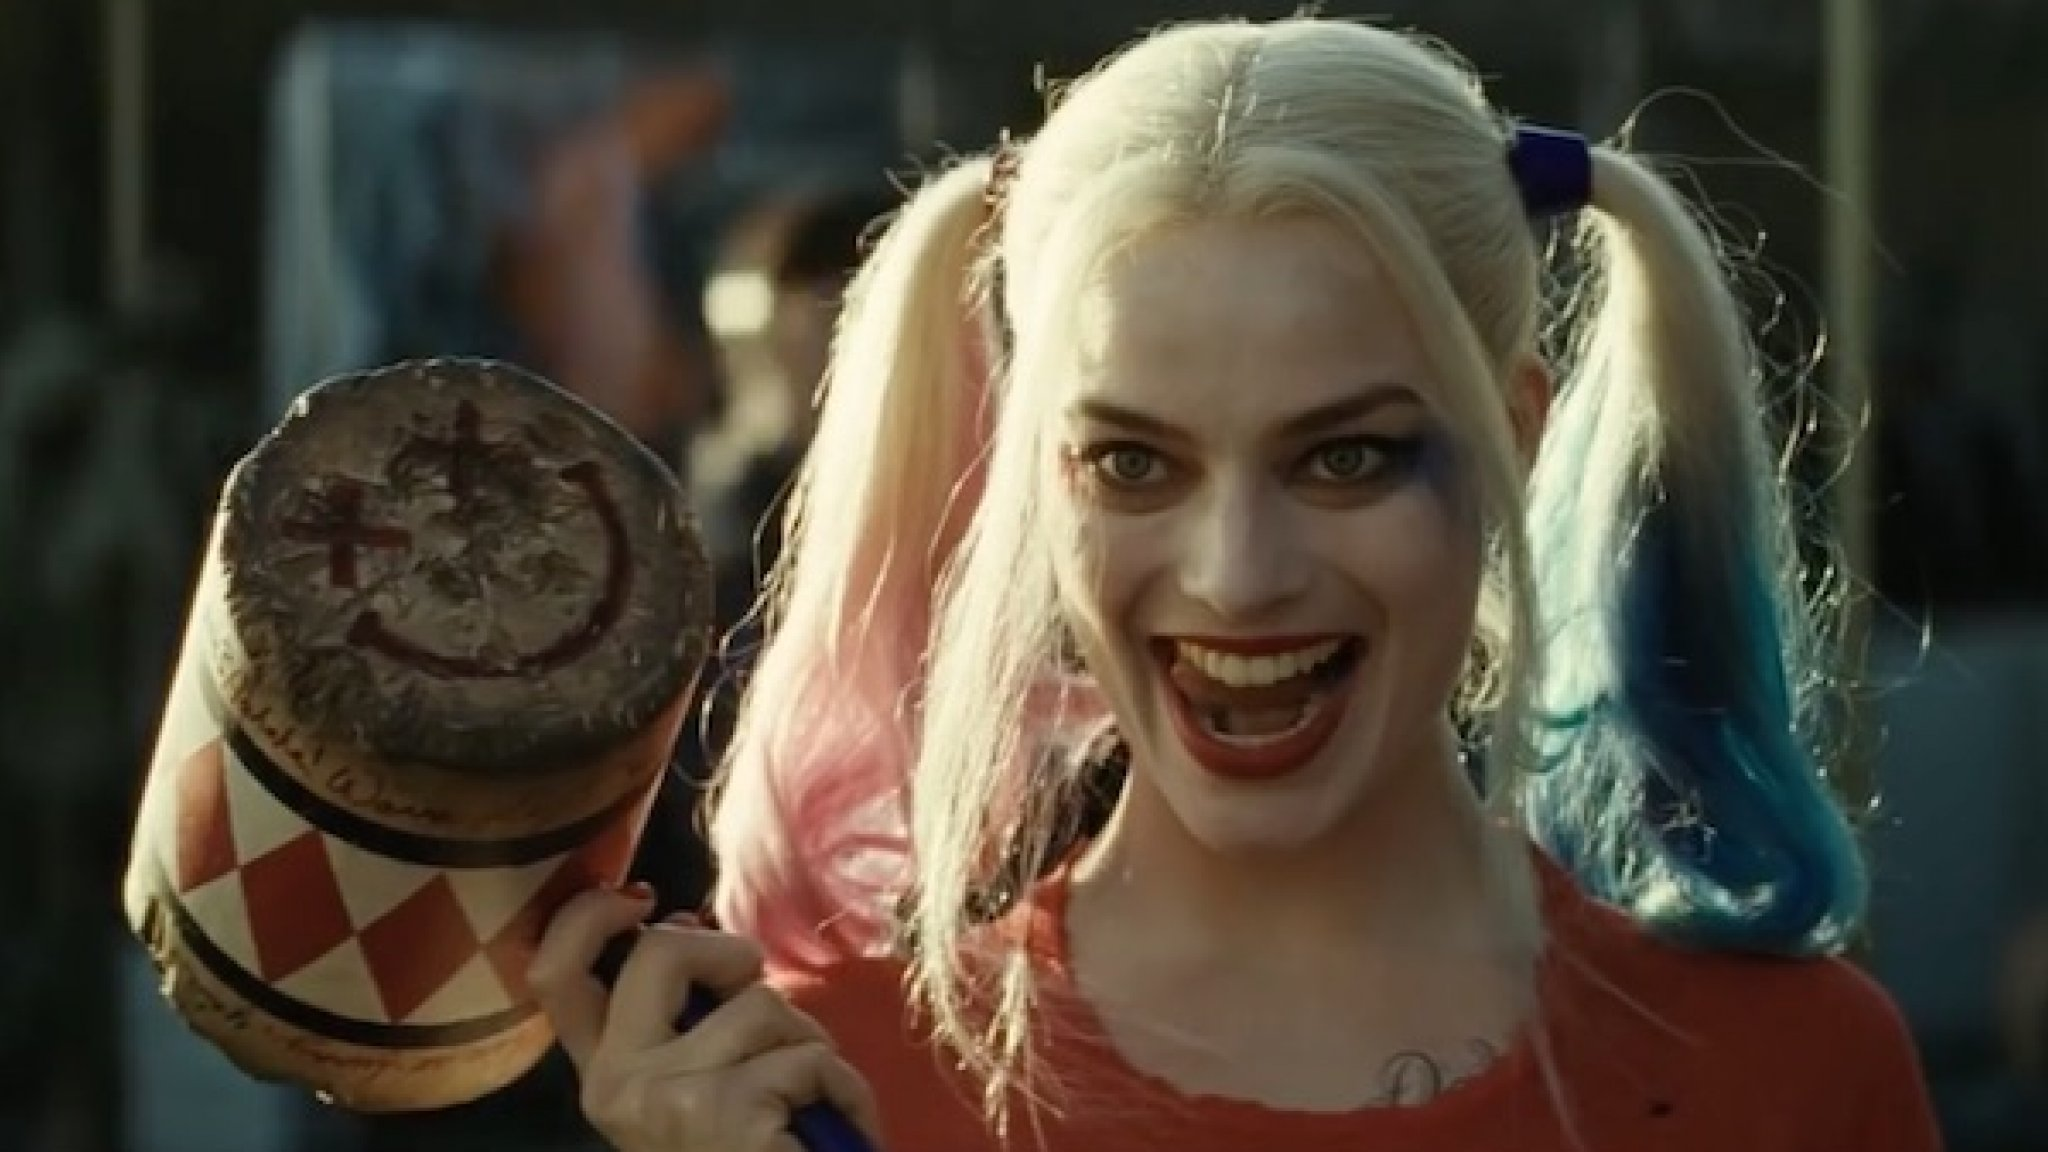 So This Is The Famous Suicide Squad!?